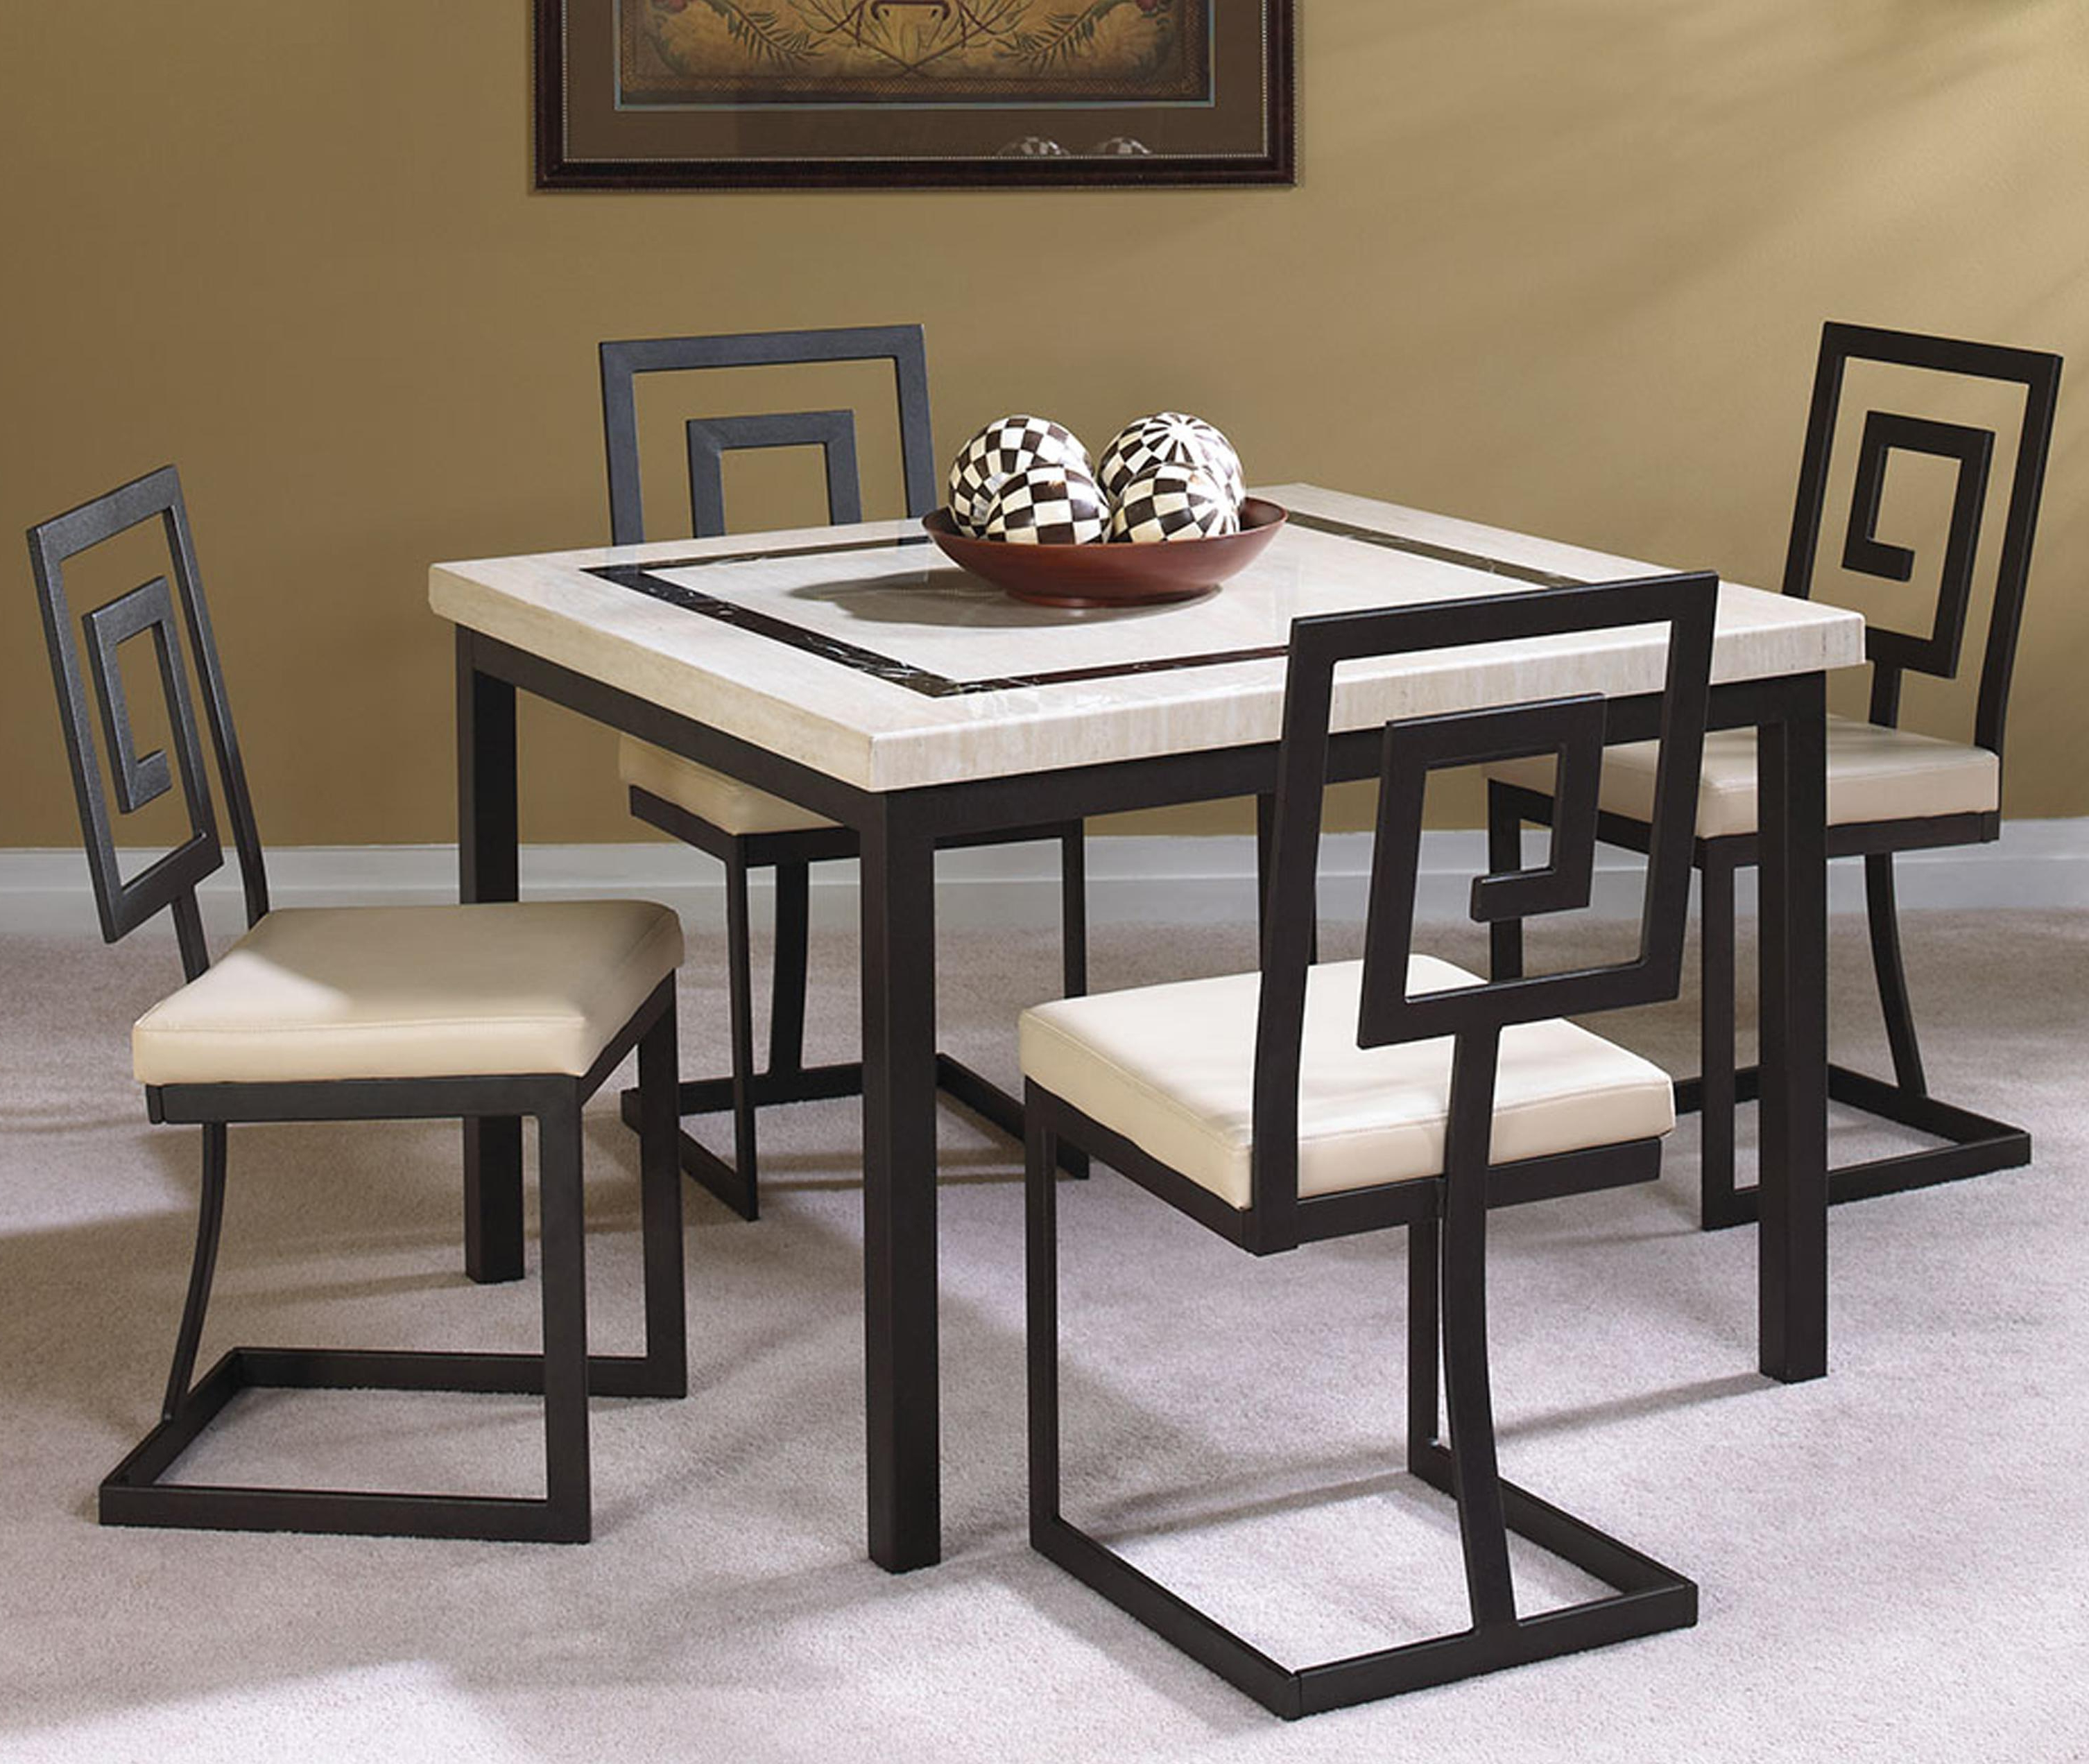 Value Within Best And Newest 5 Piece Dining Sets (View 23 of 25)